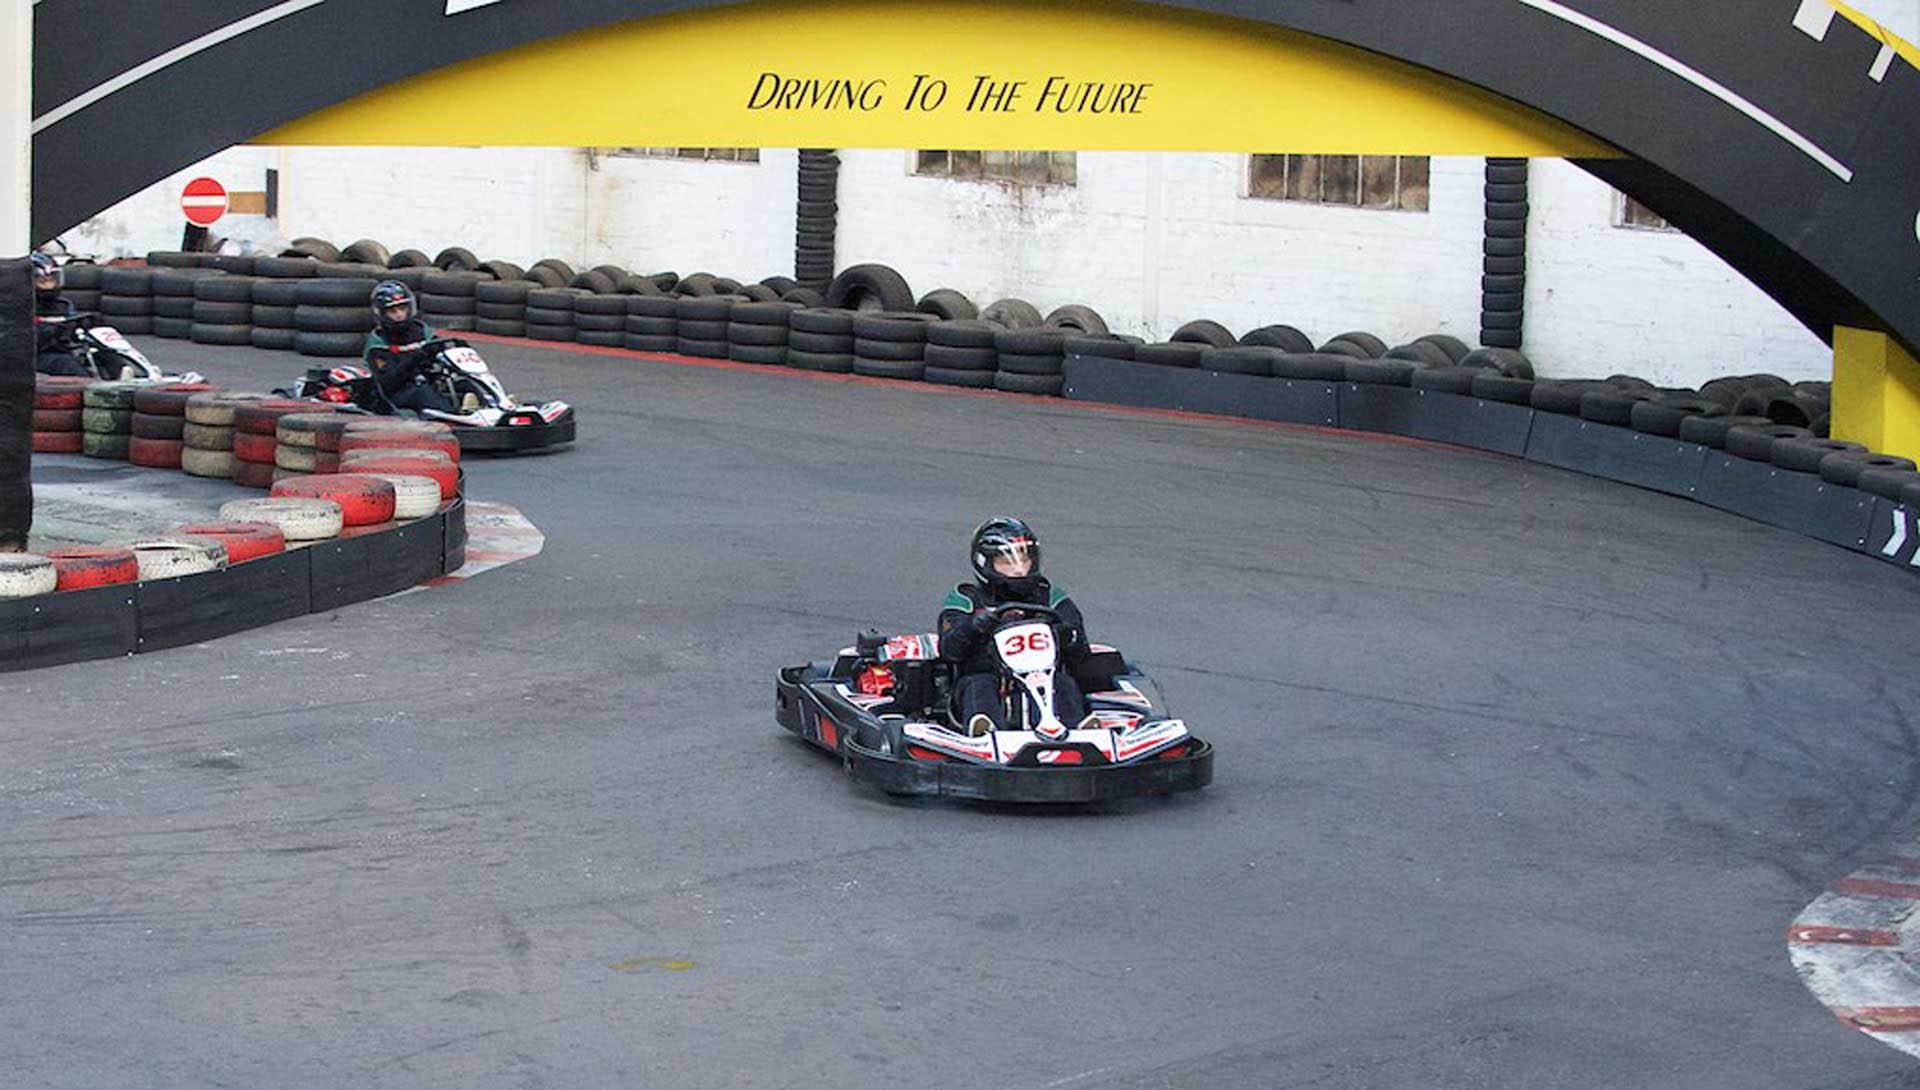 TeamSport_Gallery_Go_Karting_Warrington_1920x1090-min_2.jpg